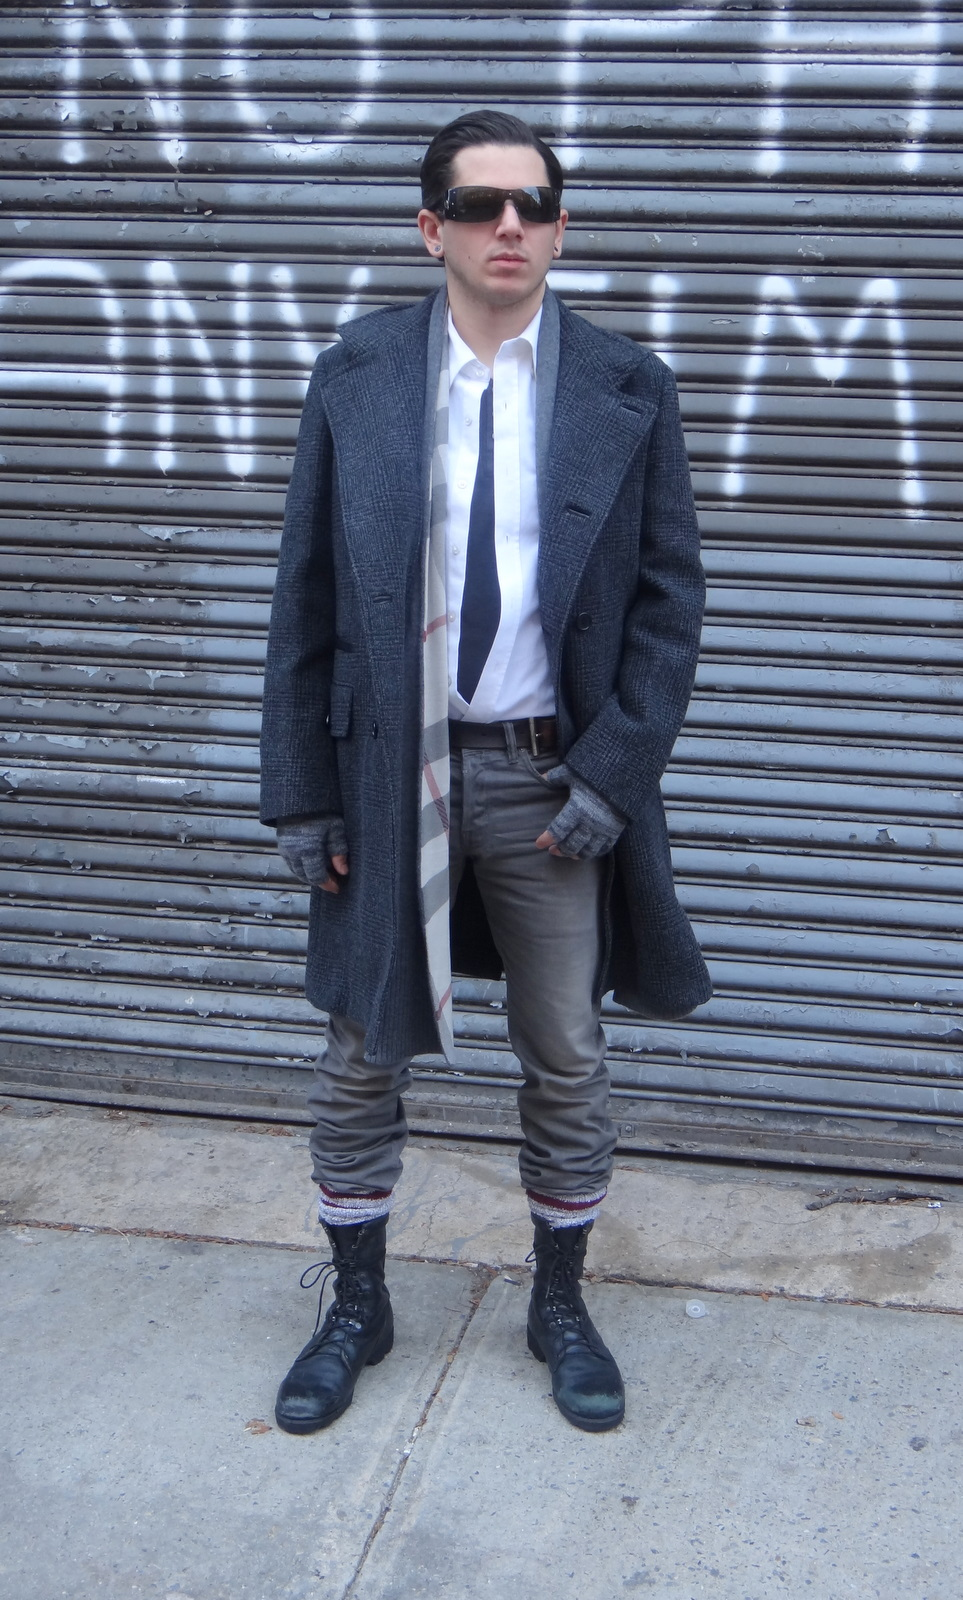 ad6764bc07 Denim by AllSaints Spitalfields  Boots by Altama  Scarf by Burberry  Camp  socks from J Crew  Fingerless gloves from the Men s Store ...